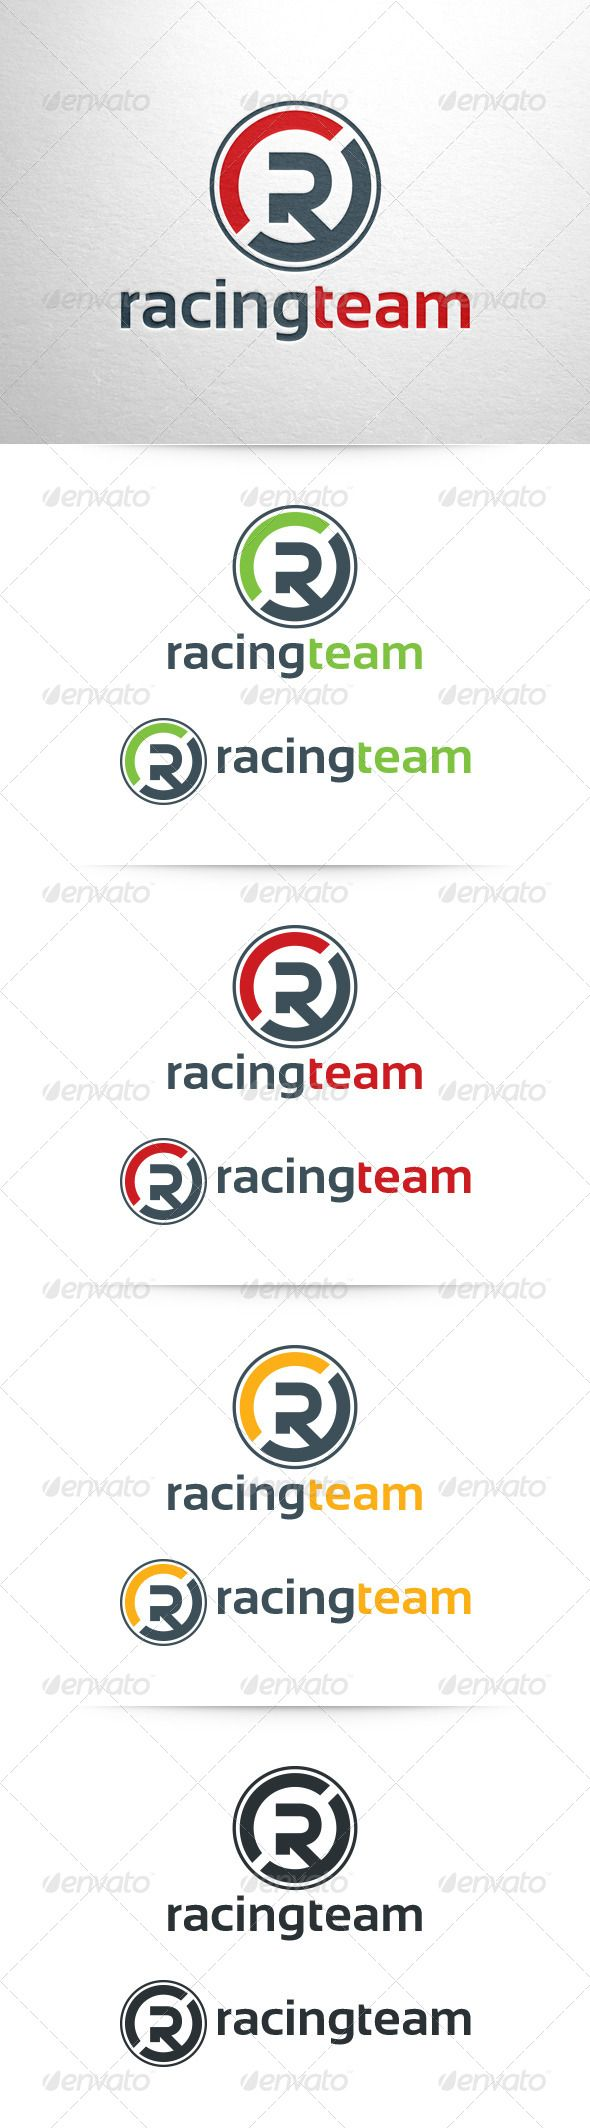 Racing Team Letter R - Logo Design Template Vector #logotype Download it here: http://graphicriver.net/item/racing-team-letter-r-logo-template/6459820?s_rank=1505?ref=nesto